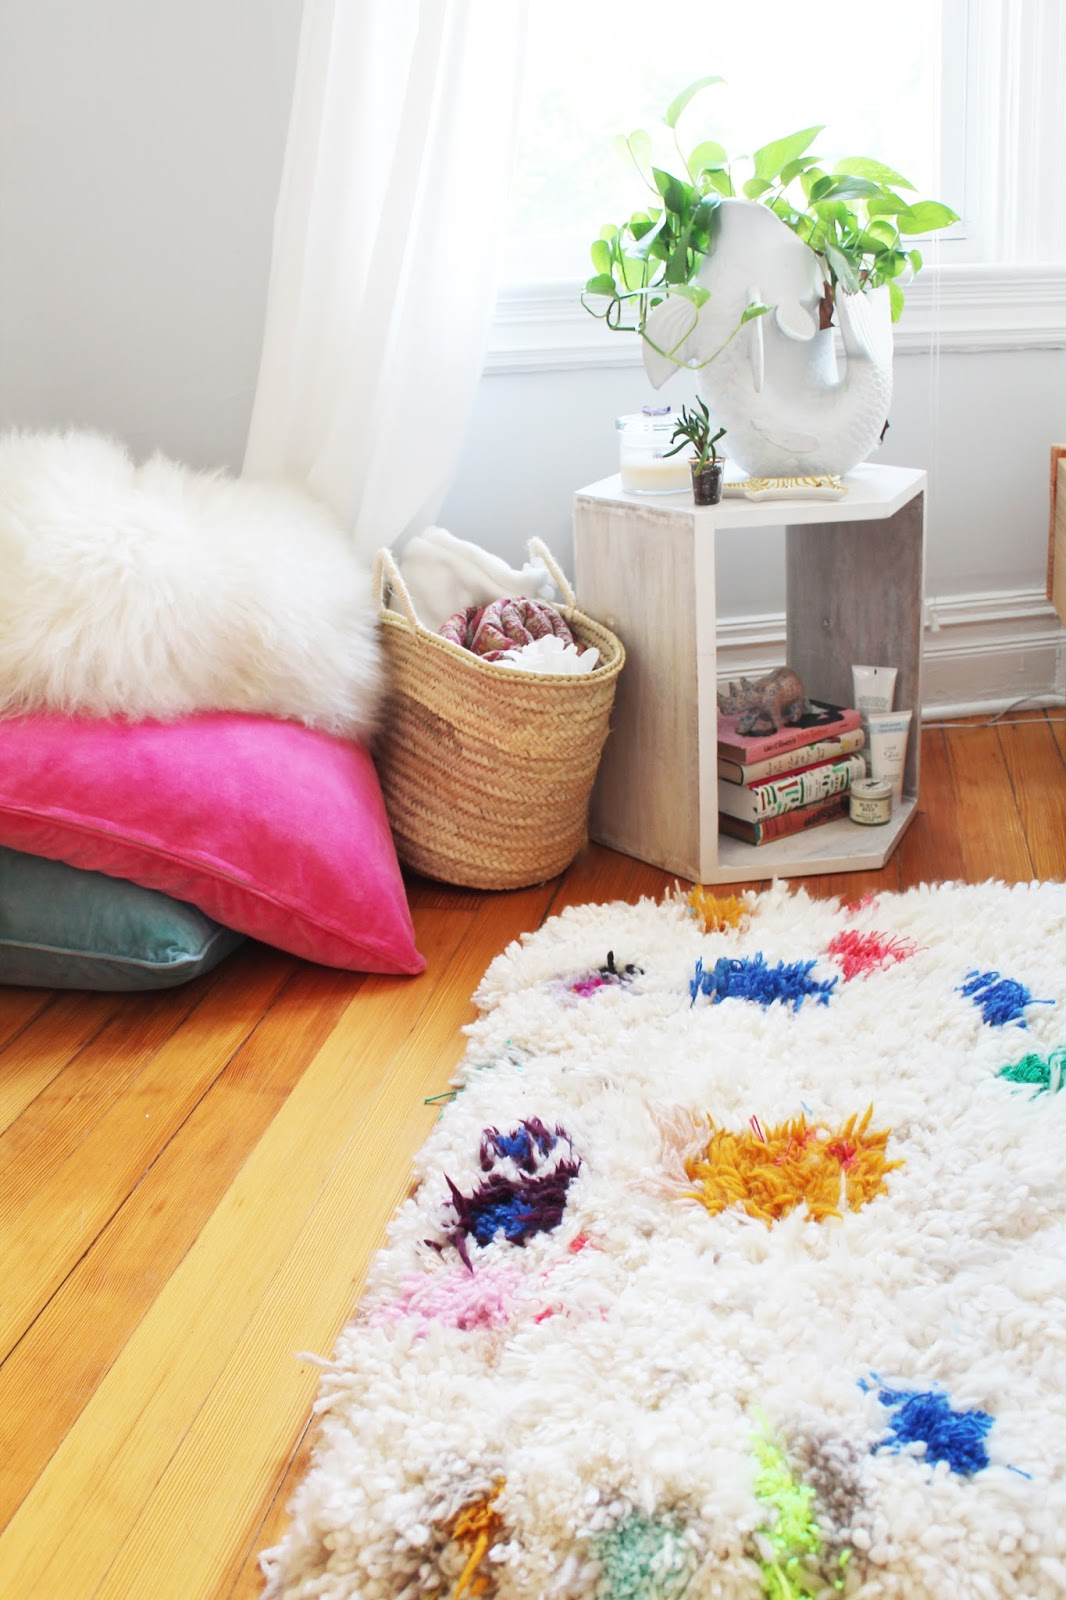 DIY Yarn Shag Rug by Lindsey Crafter